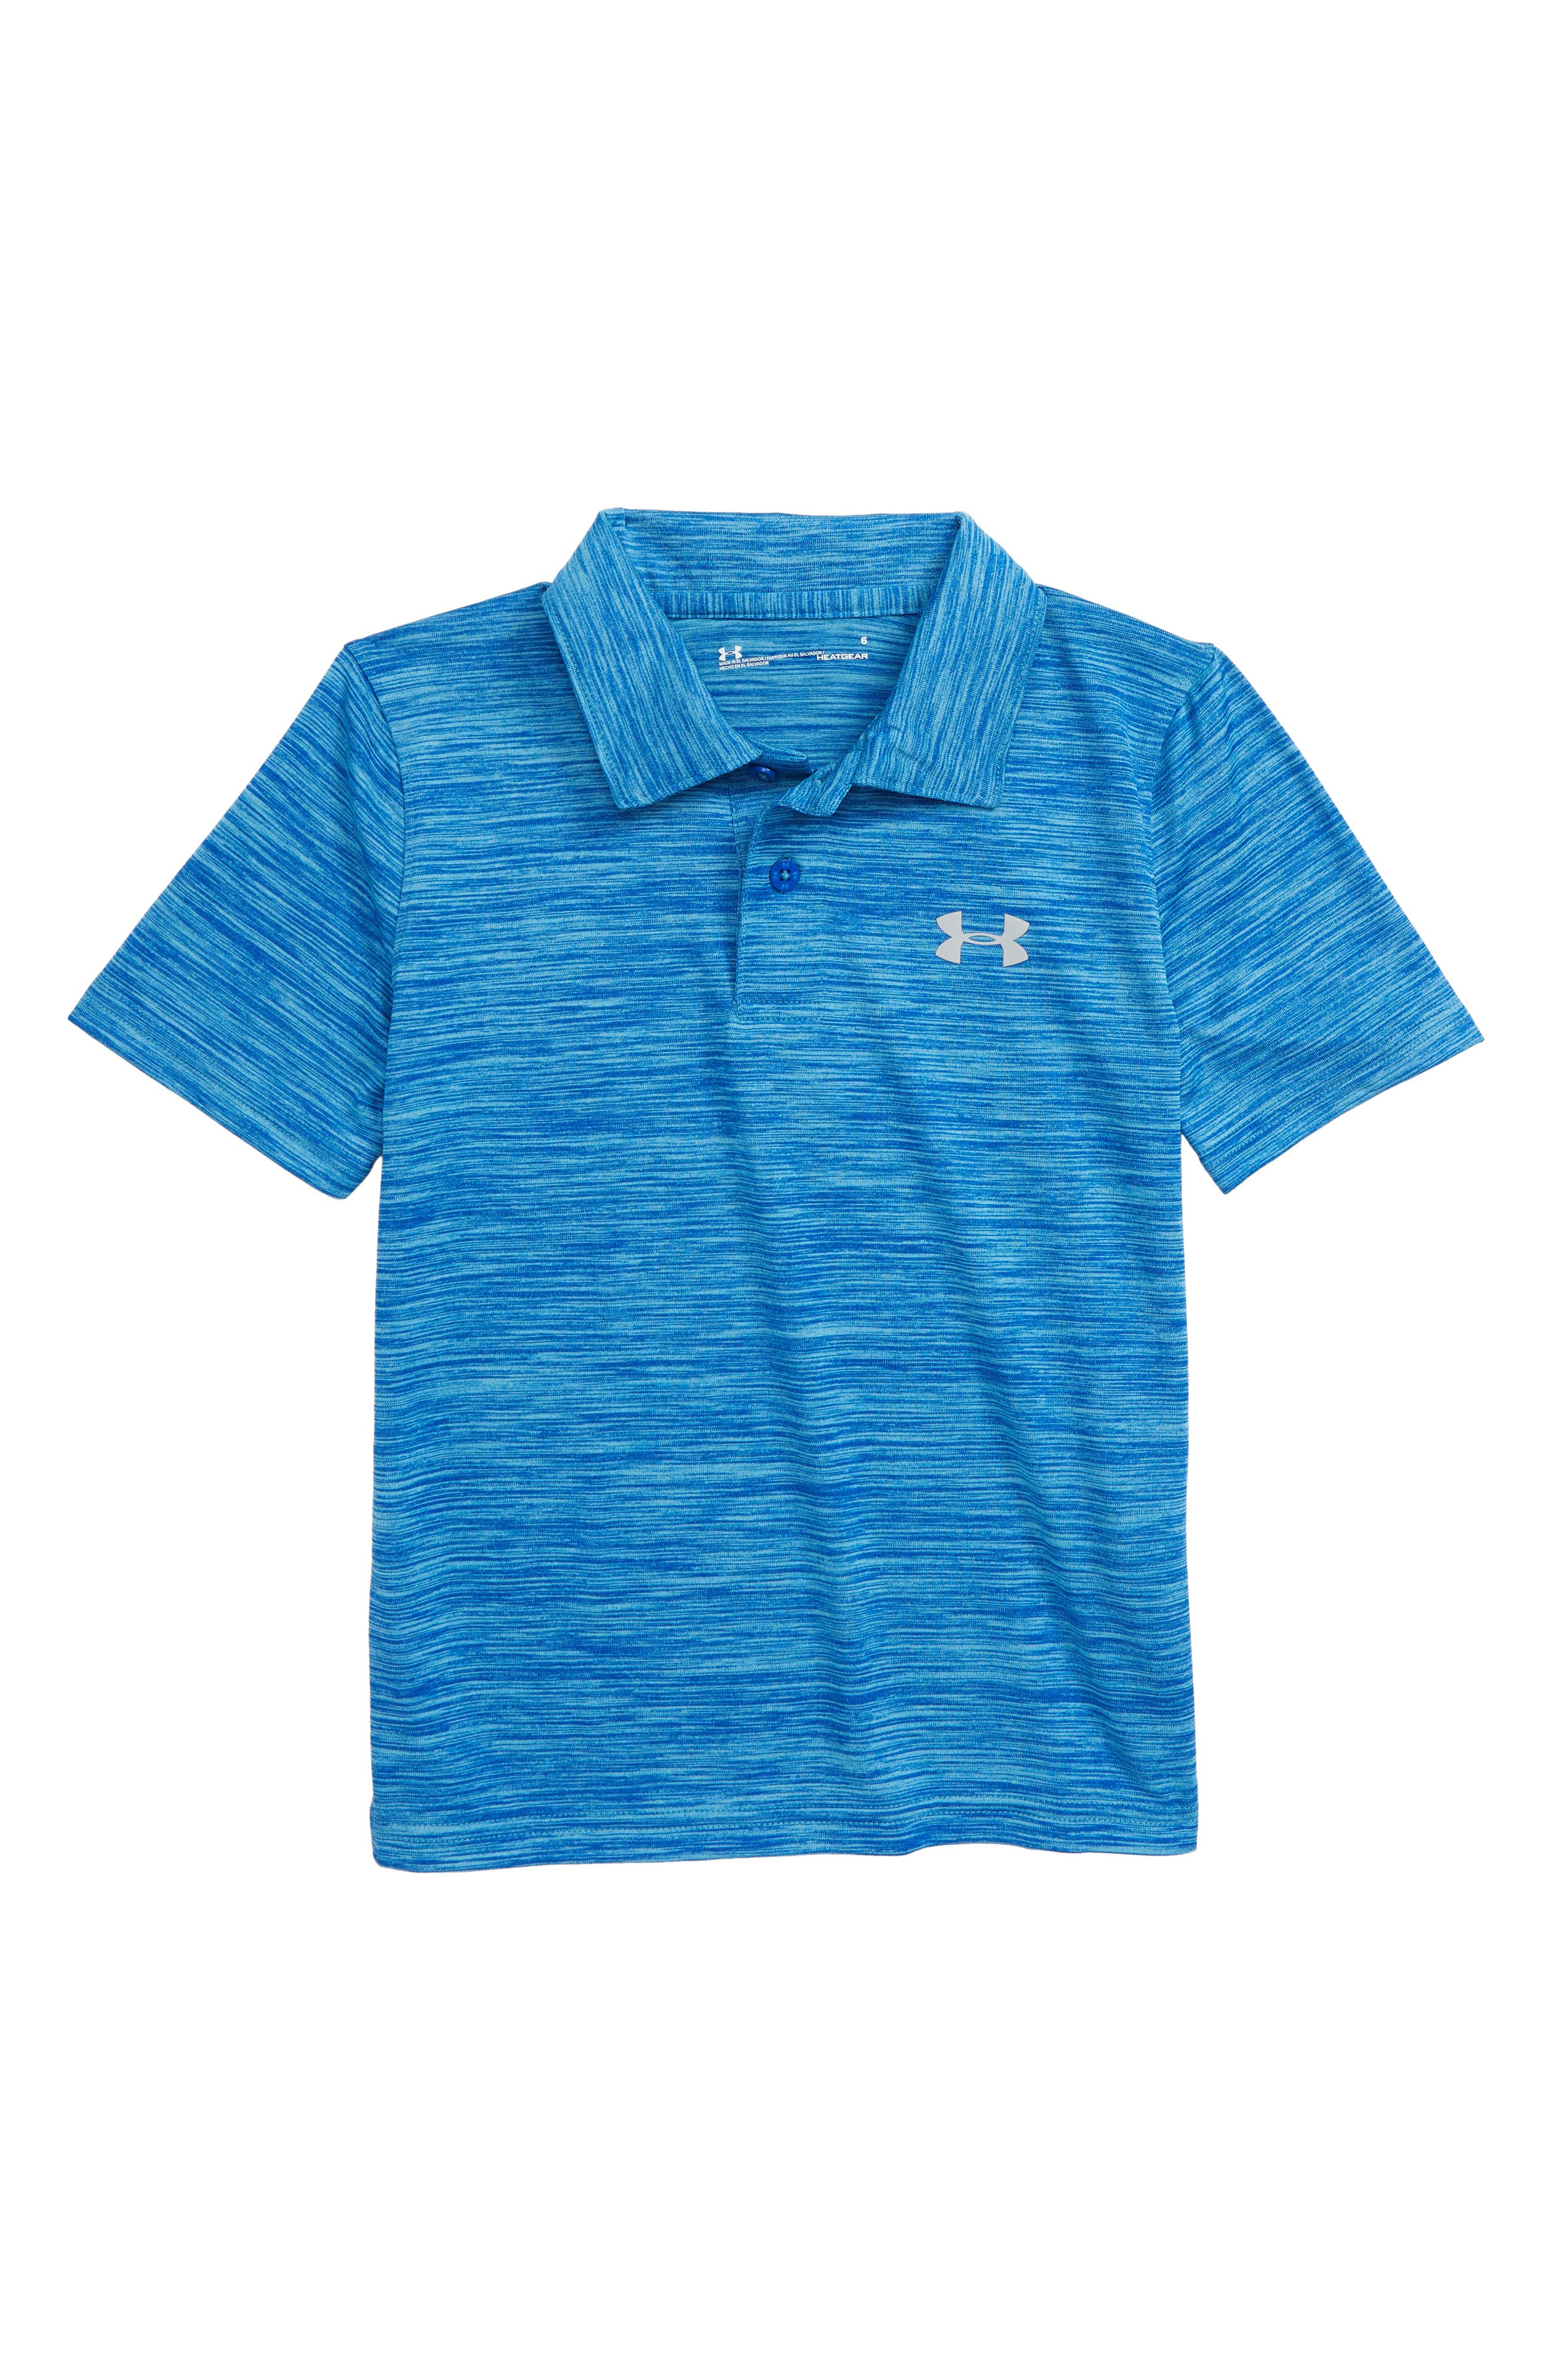 UNDER ARMOUR,                             Match Play Twist HeatGear<sup>®</sup> Polo,                             Main thumbnail 1, color,                             ULTRA BLUE